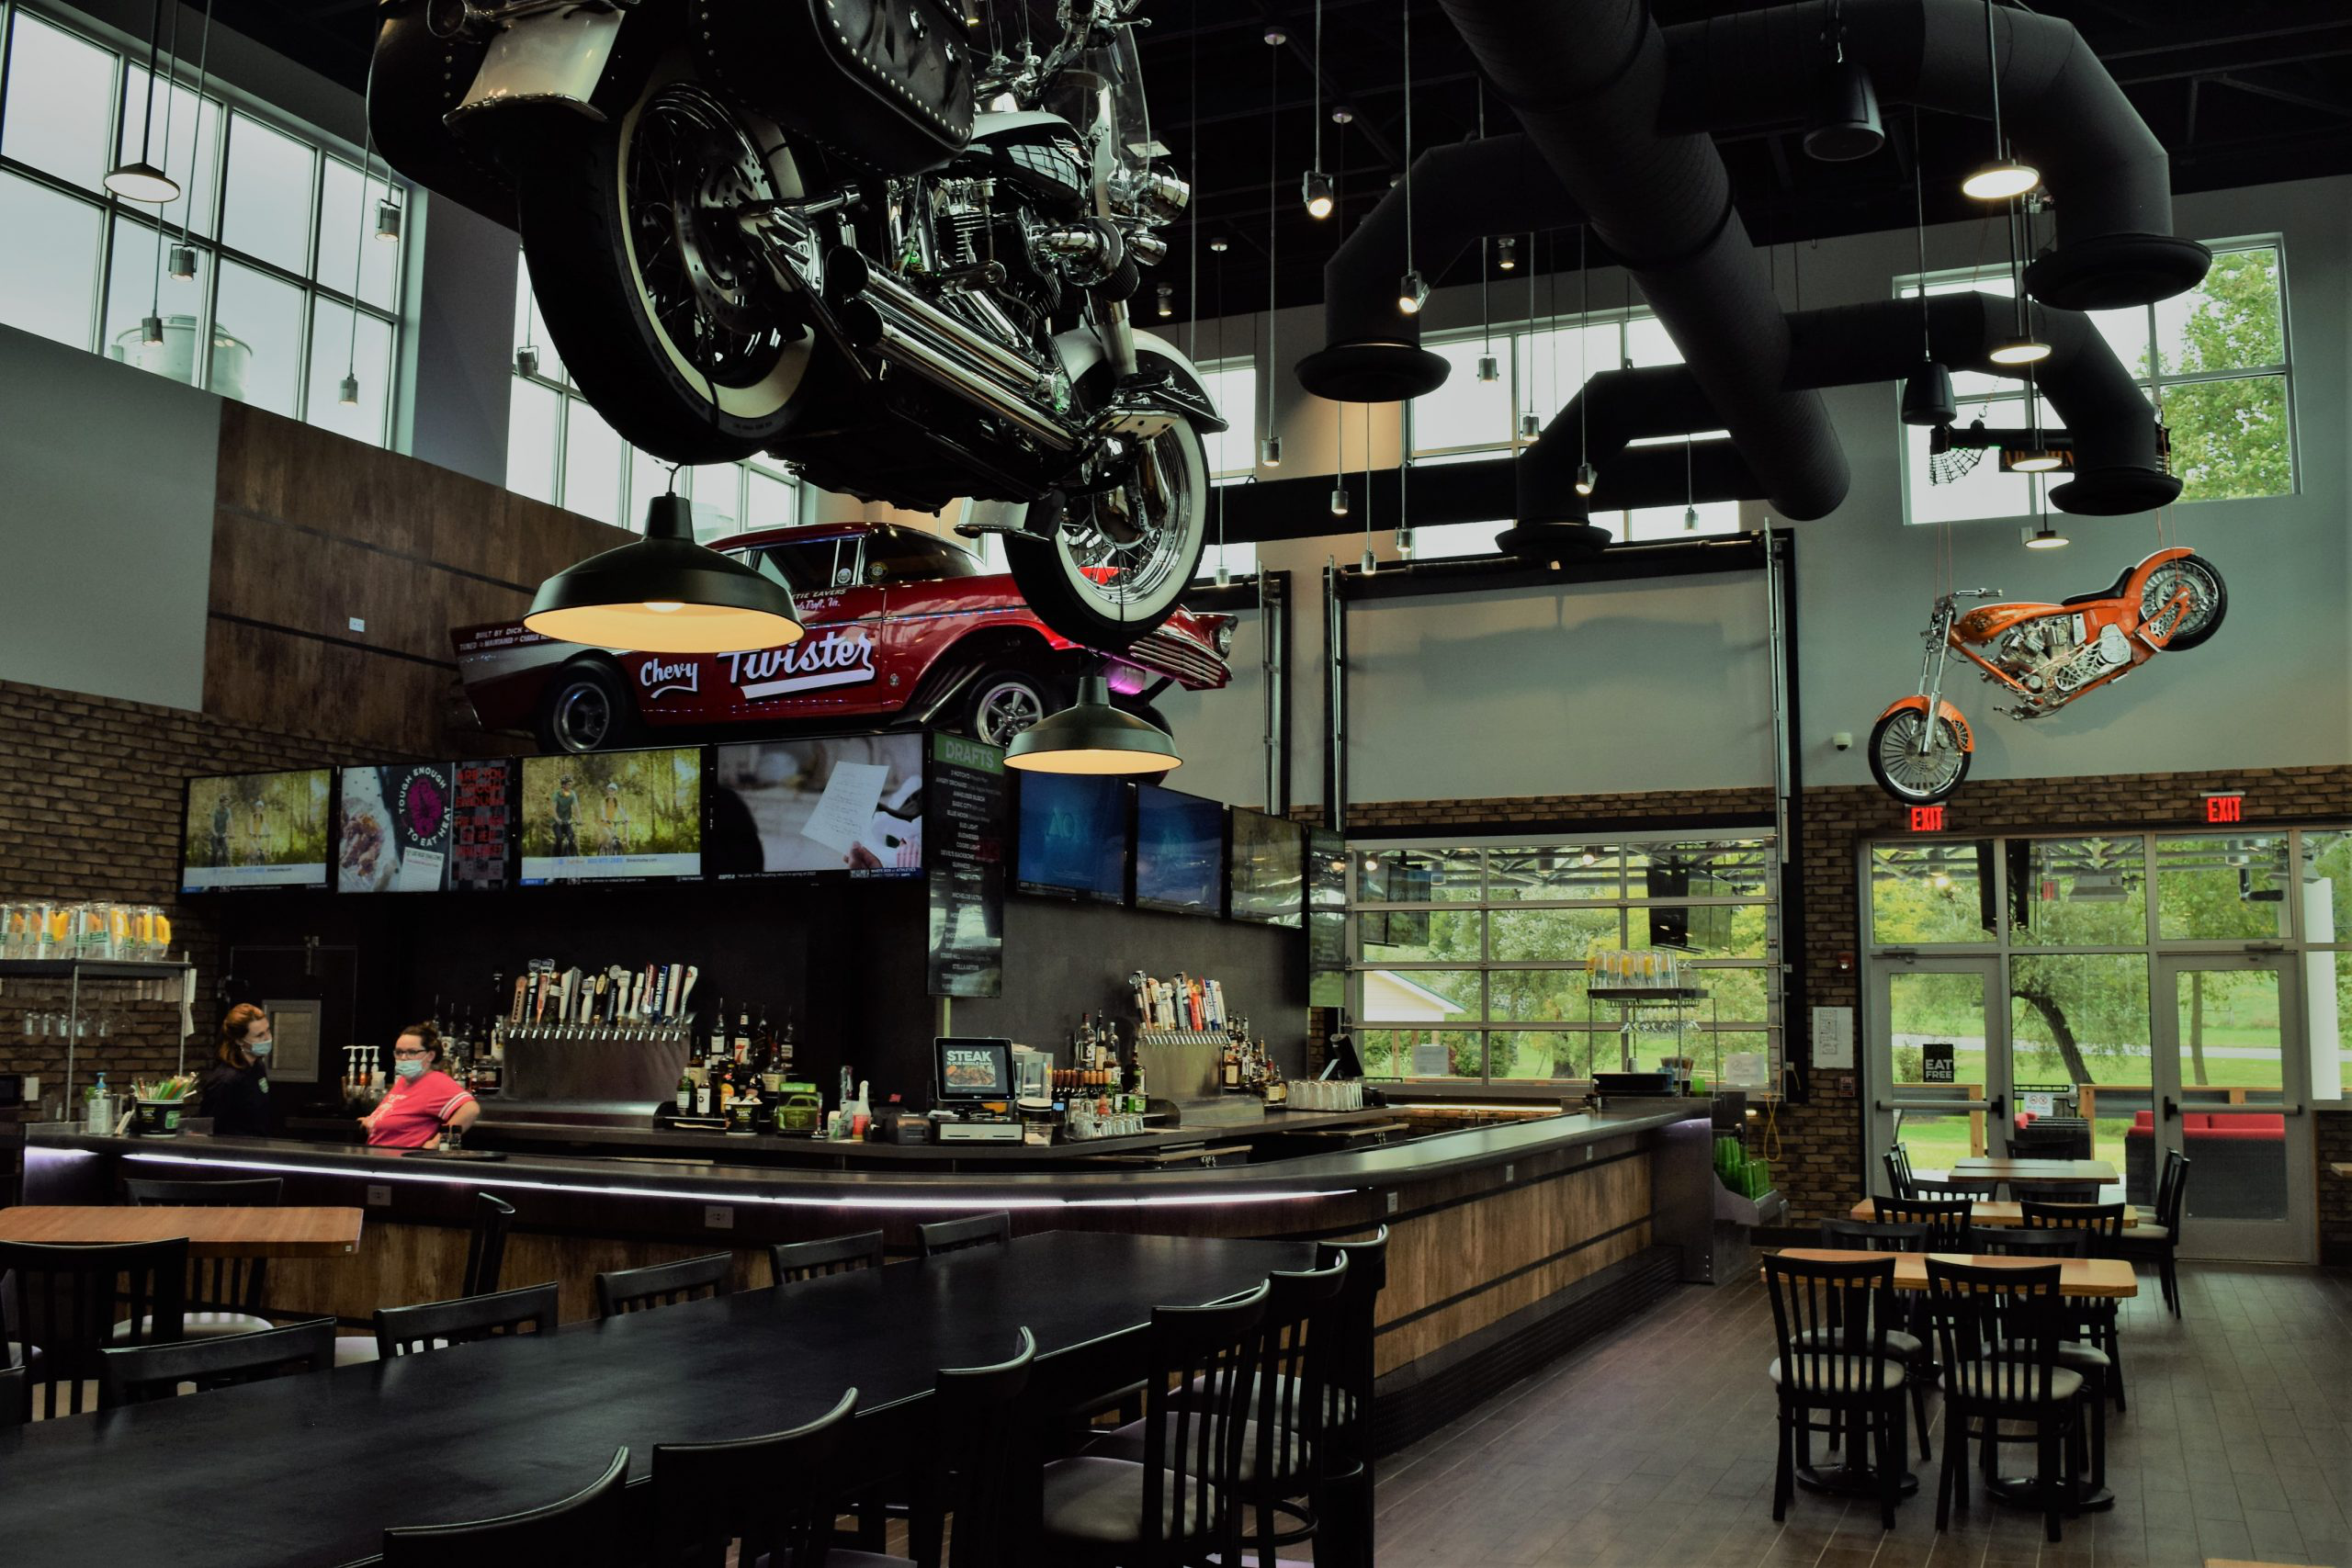 A drag car hanging above the bar and motor cycle hanging over indoor seating